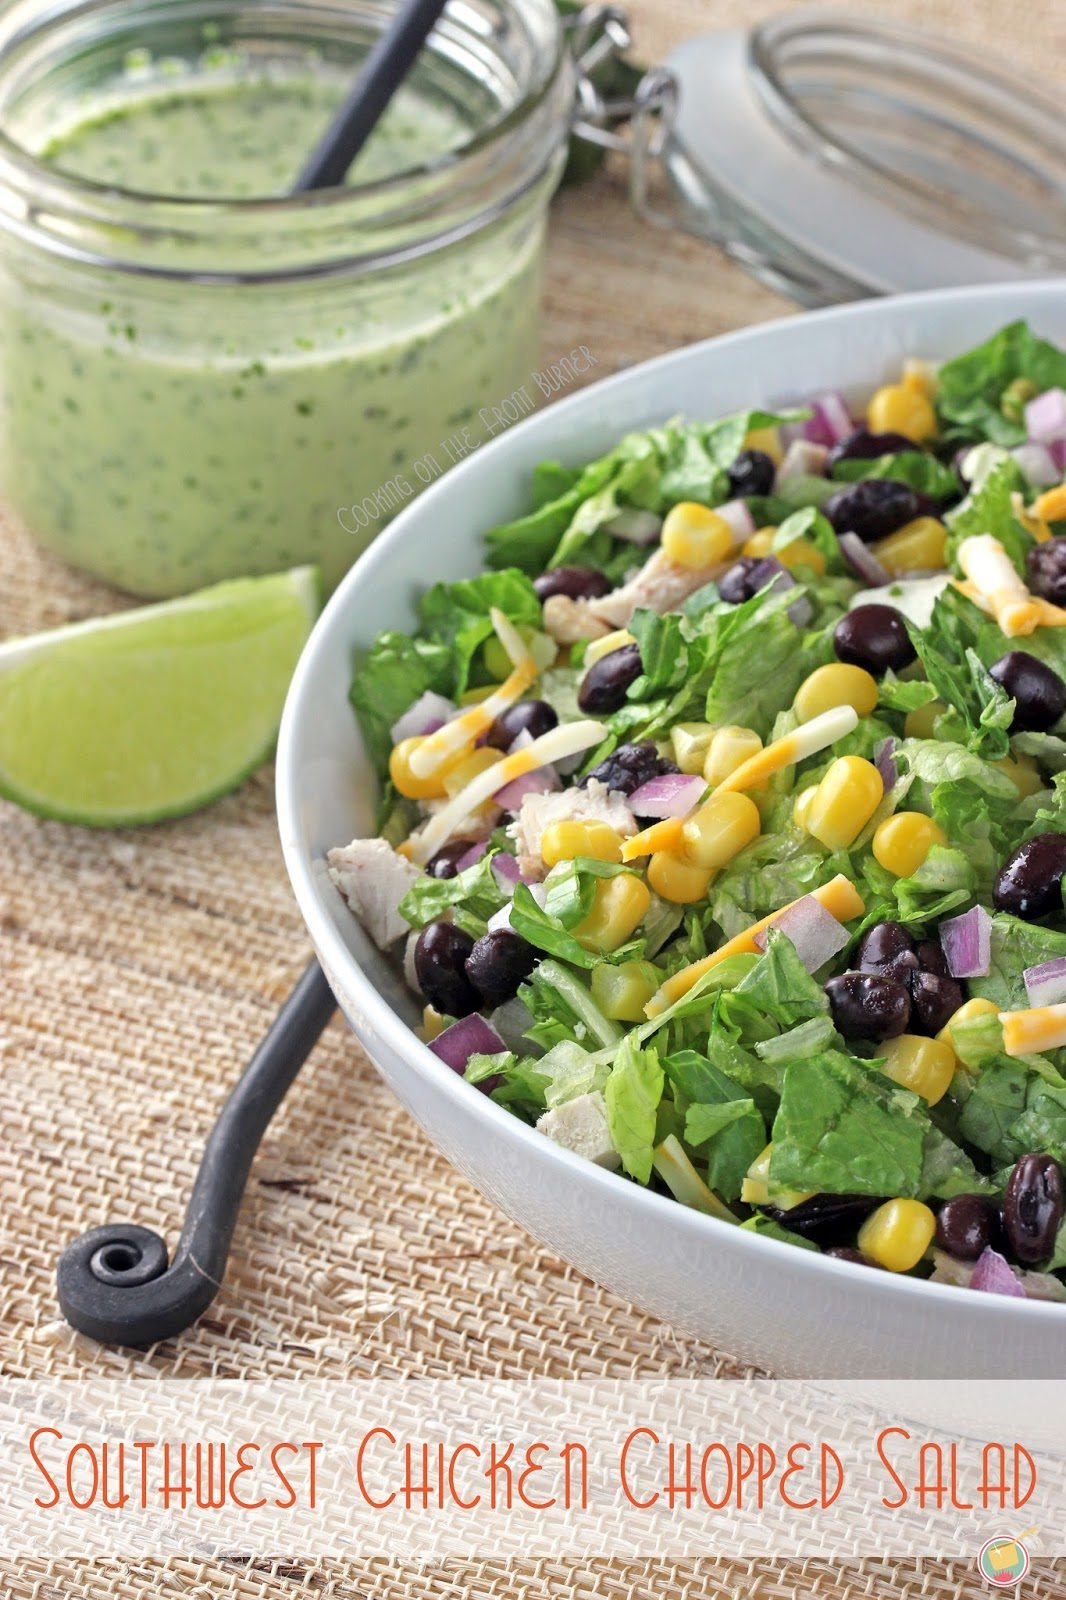 Southwest Chicken Chopped Salad - full of fresh flavor with a creamy jalapeno dressing | Cooking on the Front Burner #southwestsalad #jalapenosaladdressing